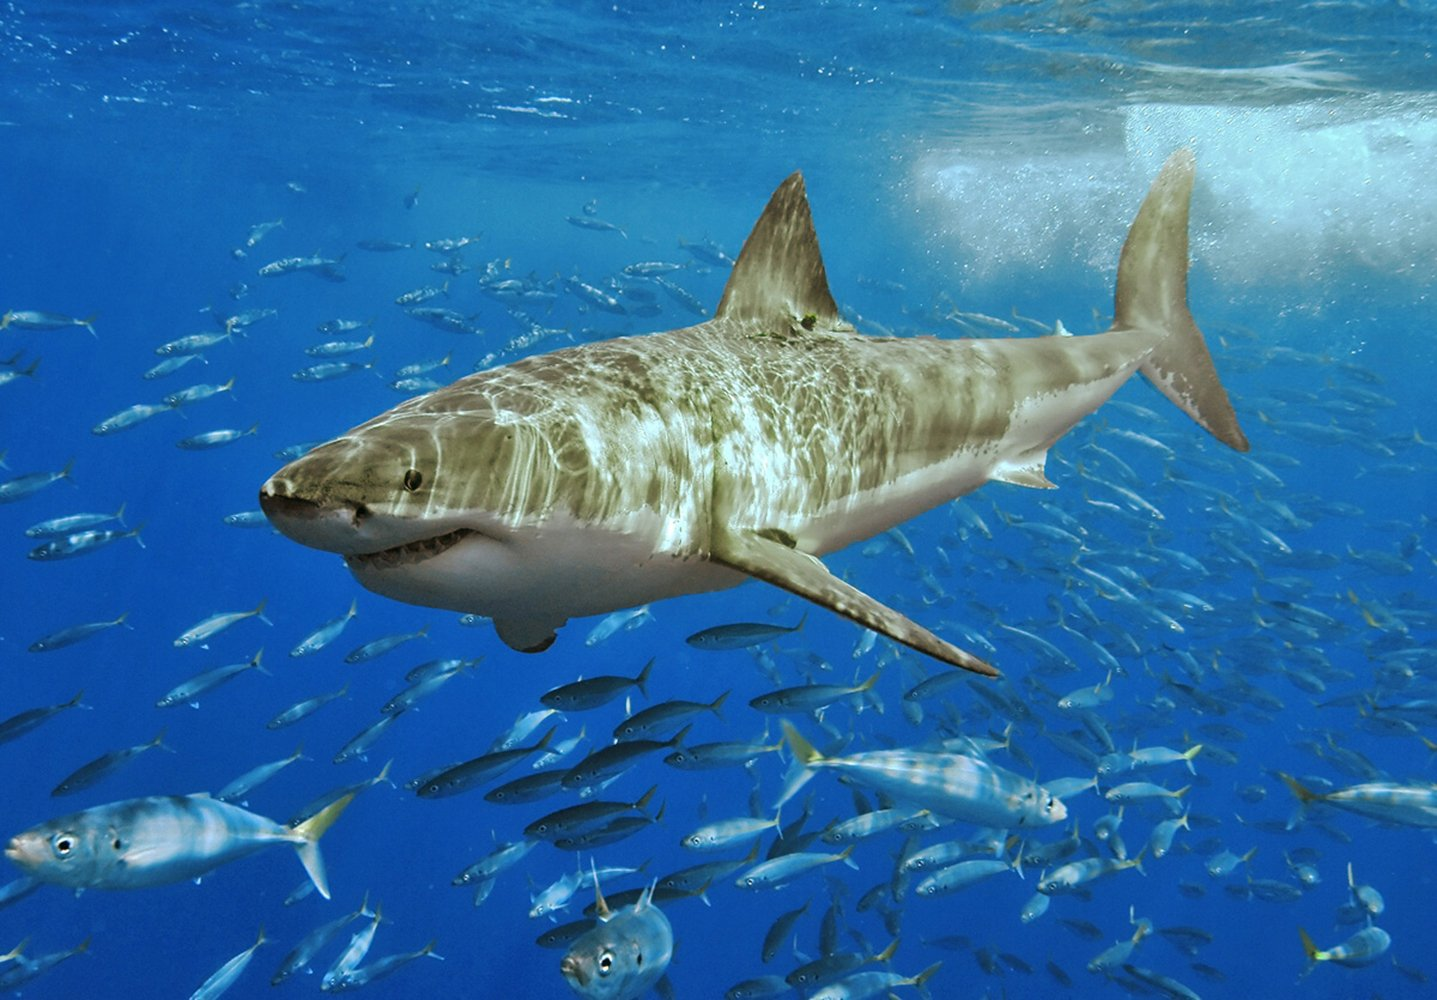 215 Shark Hd Wallpapers Background Images Wallpaper Abyss